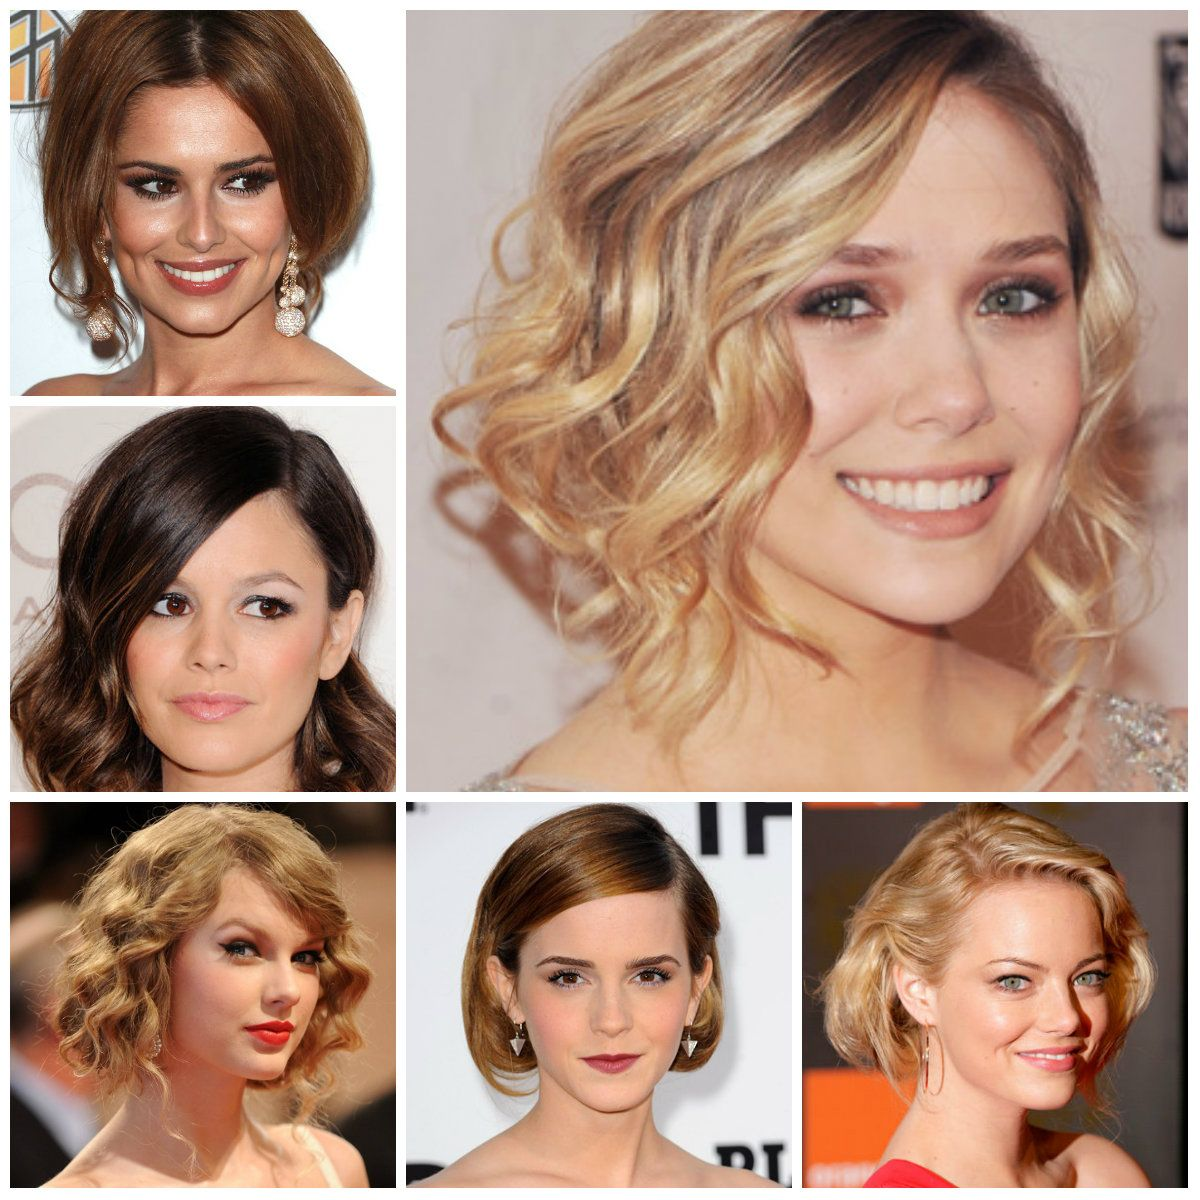 Trendy Hairstyles Awesome New Trending Hairstyles For Women 13 For Your Inspiration With